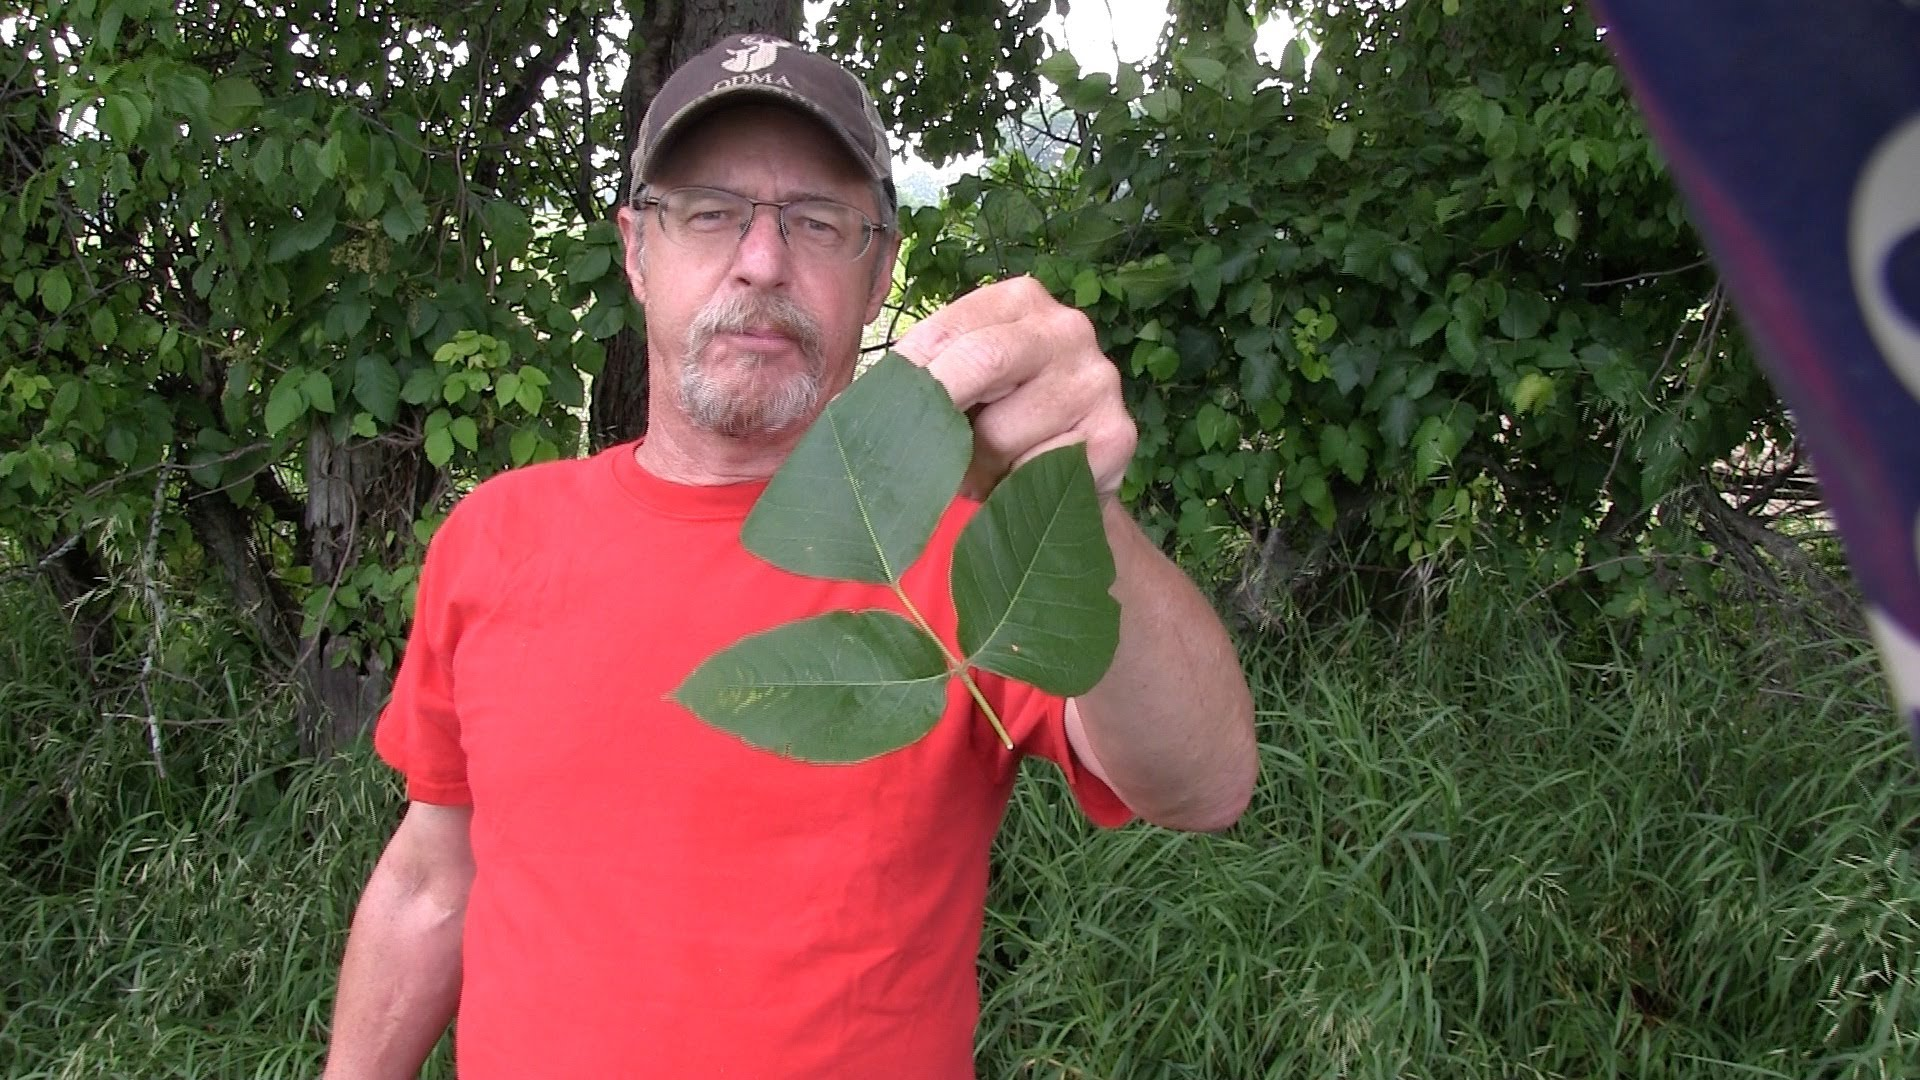 Man Stands Among Poison Ivy But Doesn't Get A Rash. Here's His SECRET!